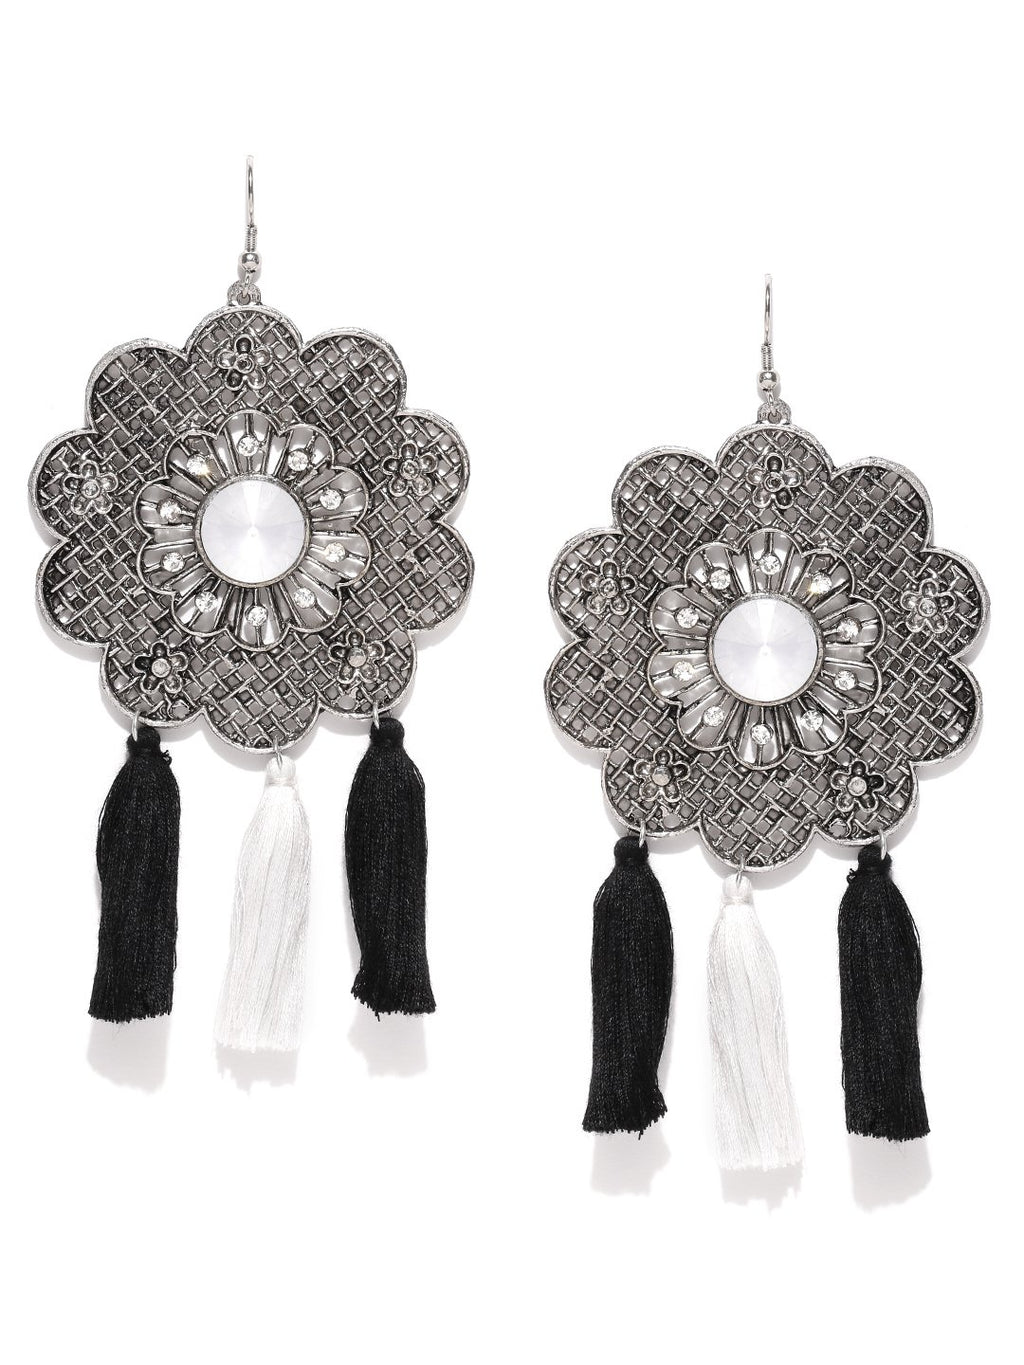 Blueberry oxidesd silver tassel drop earrings